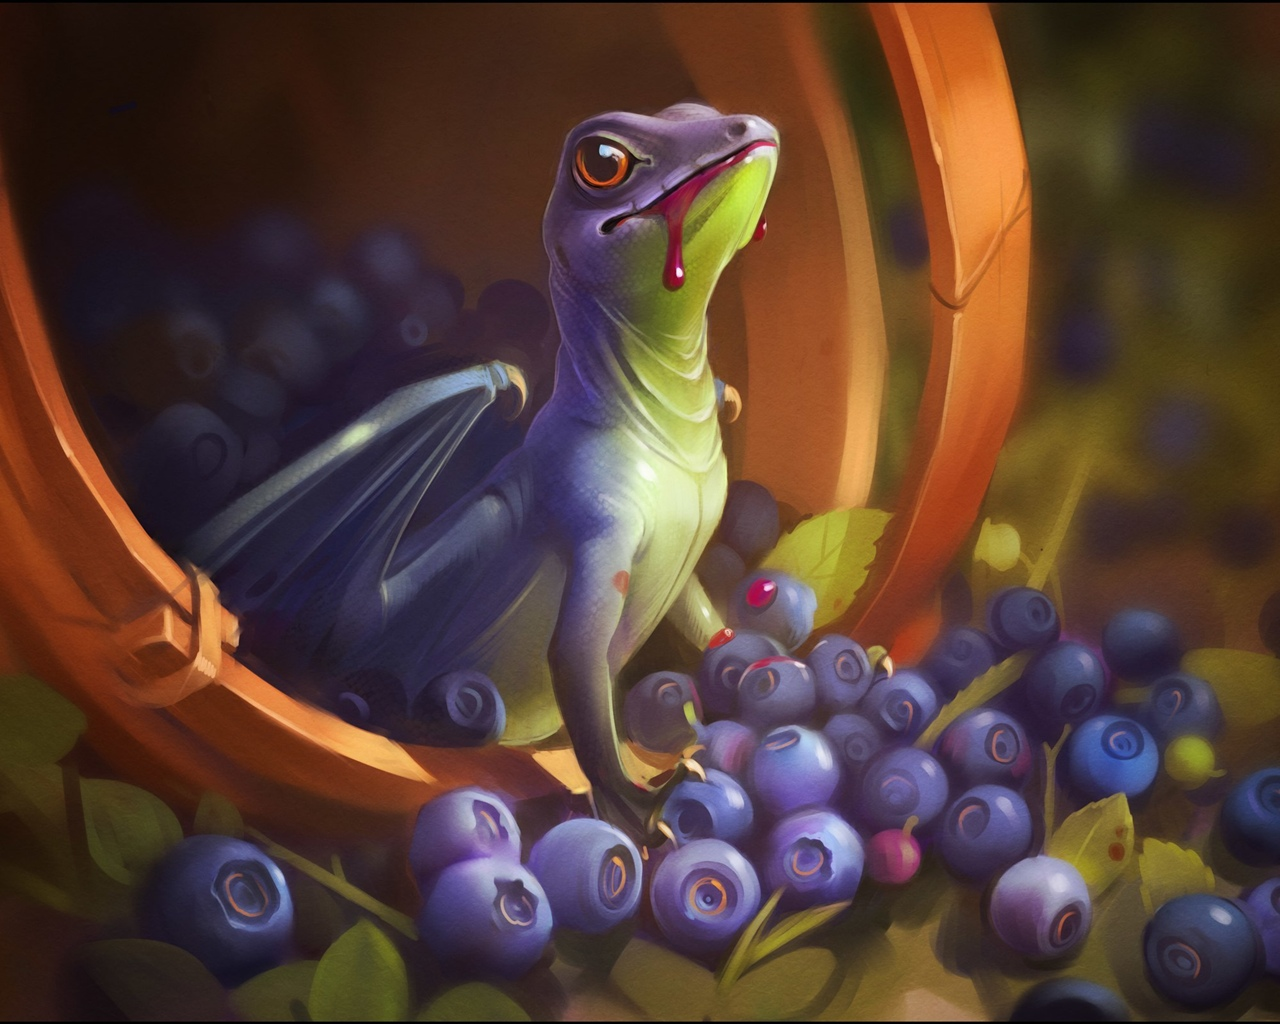 Dragon, wings, blood, blueberry, art picture 1280x1024 wallpaper